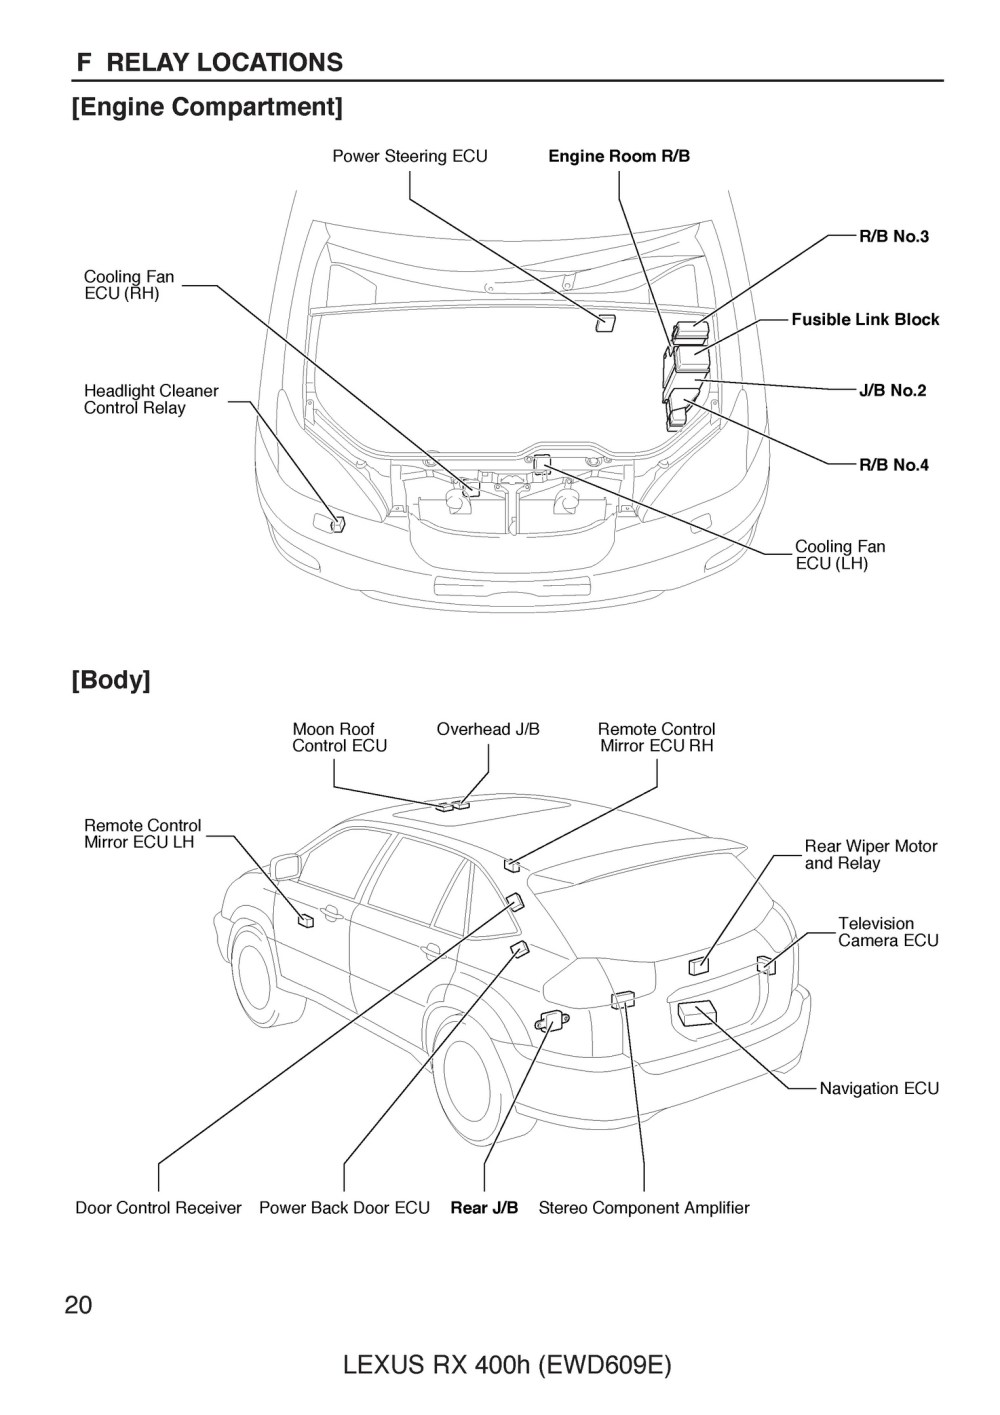 medium resolution of free 2005 lexus rx400h oem electrical wiring diagram rh sellfy com 2006 lexus rx400h wiring diagram